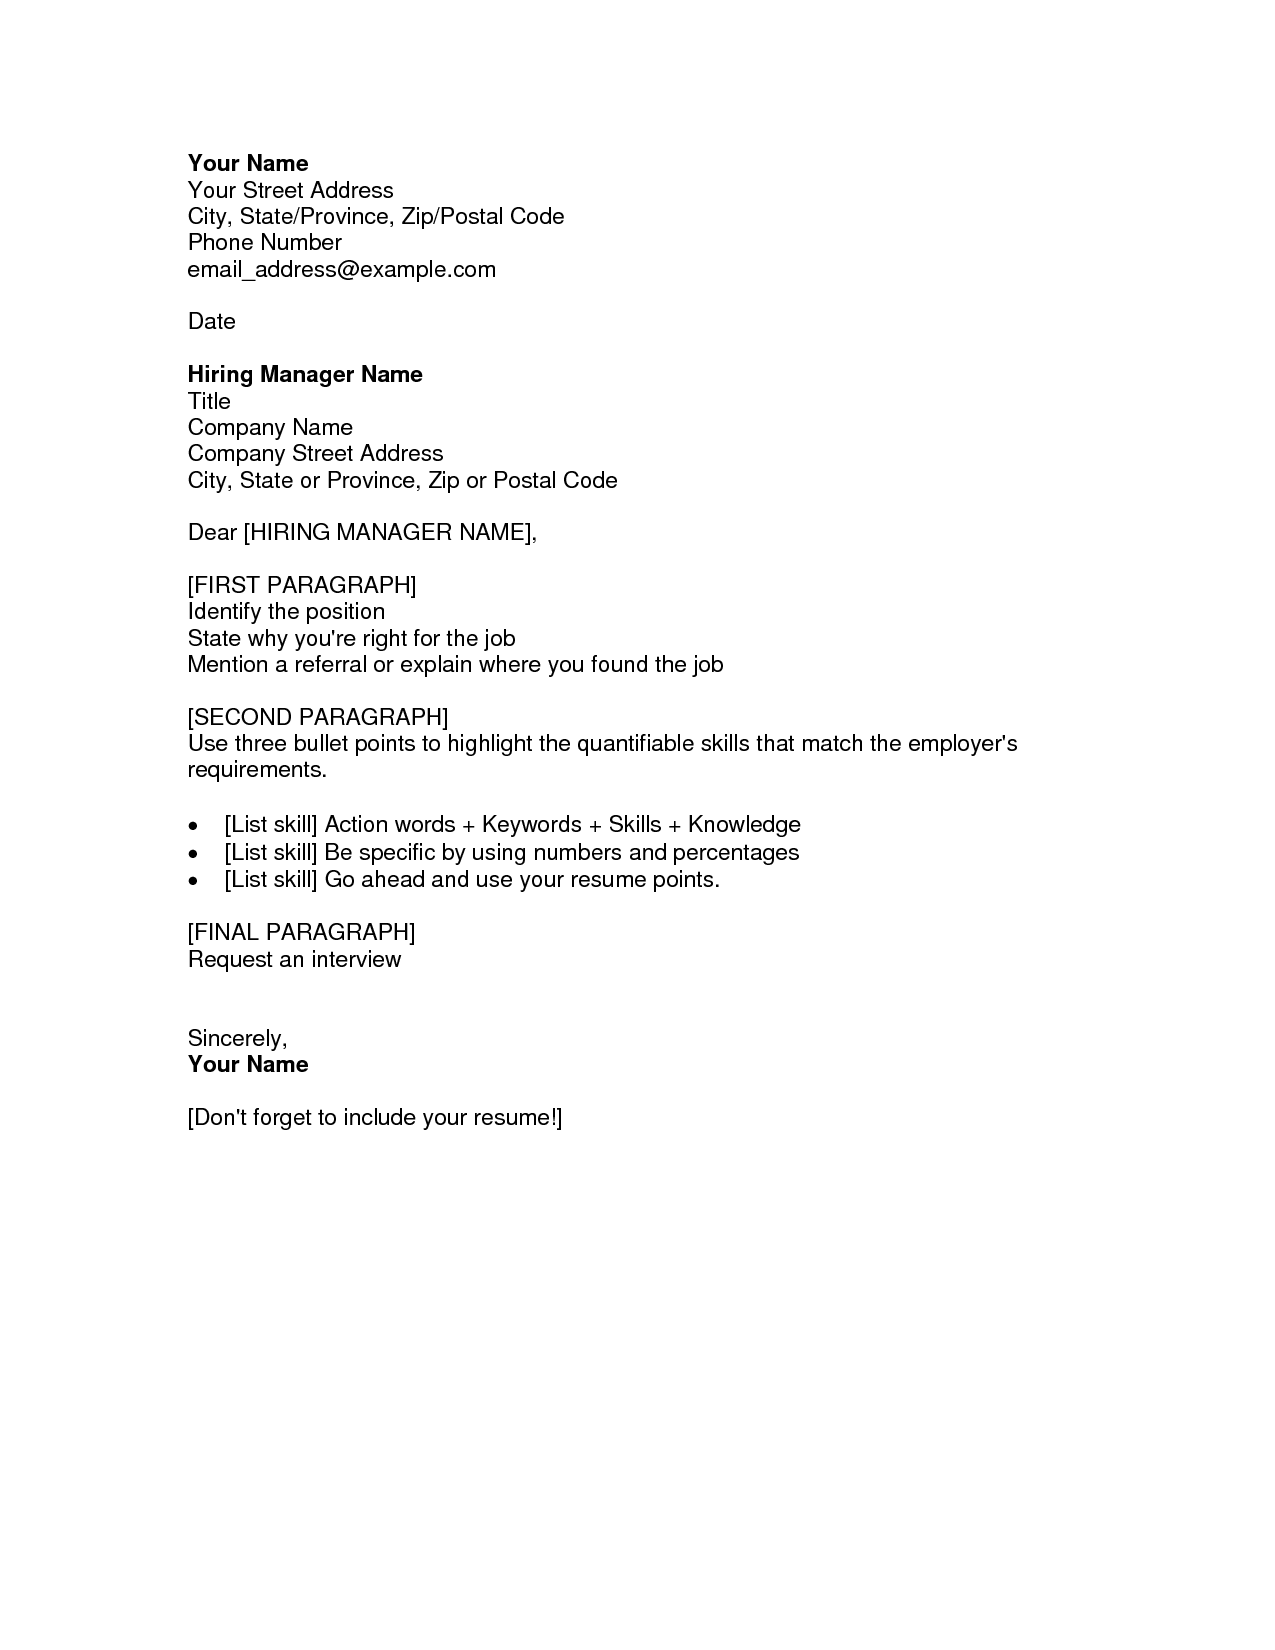 cs cover letter example reddit